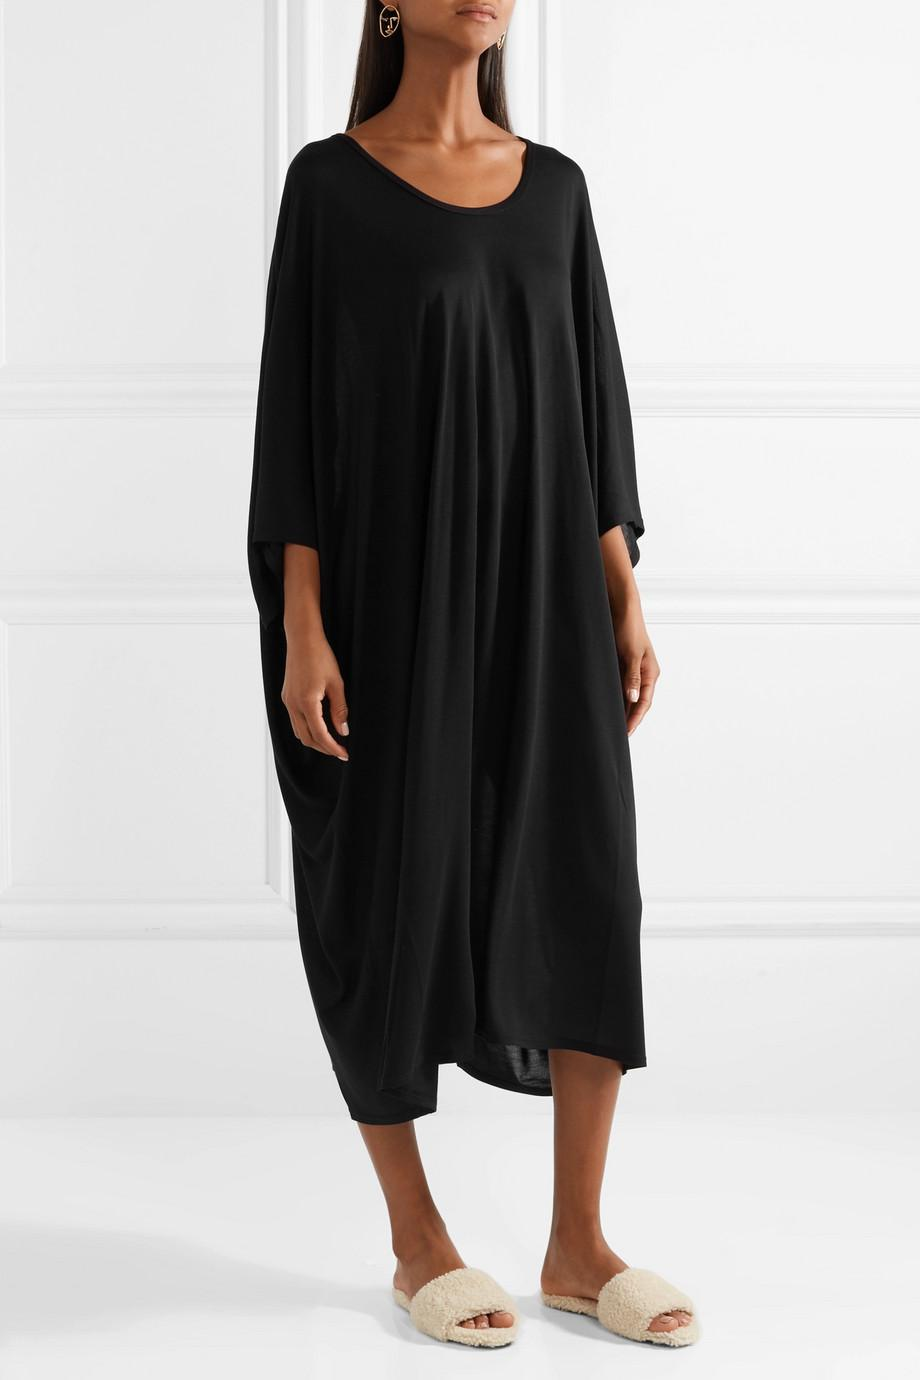 Serlyn Oversized Stretch-jersey Dress - Black The Row jiSV125pY9